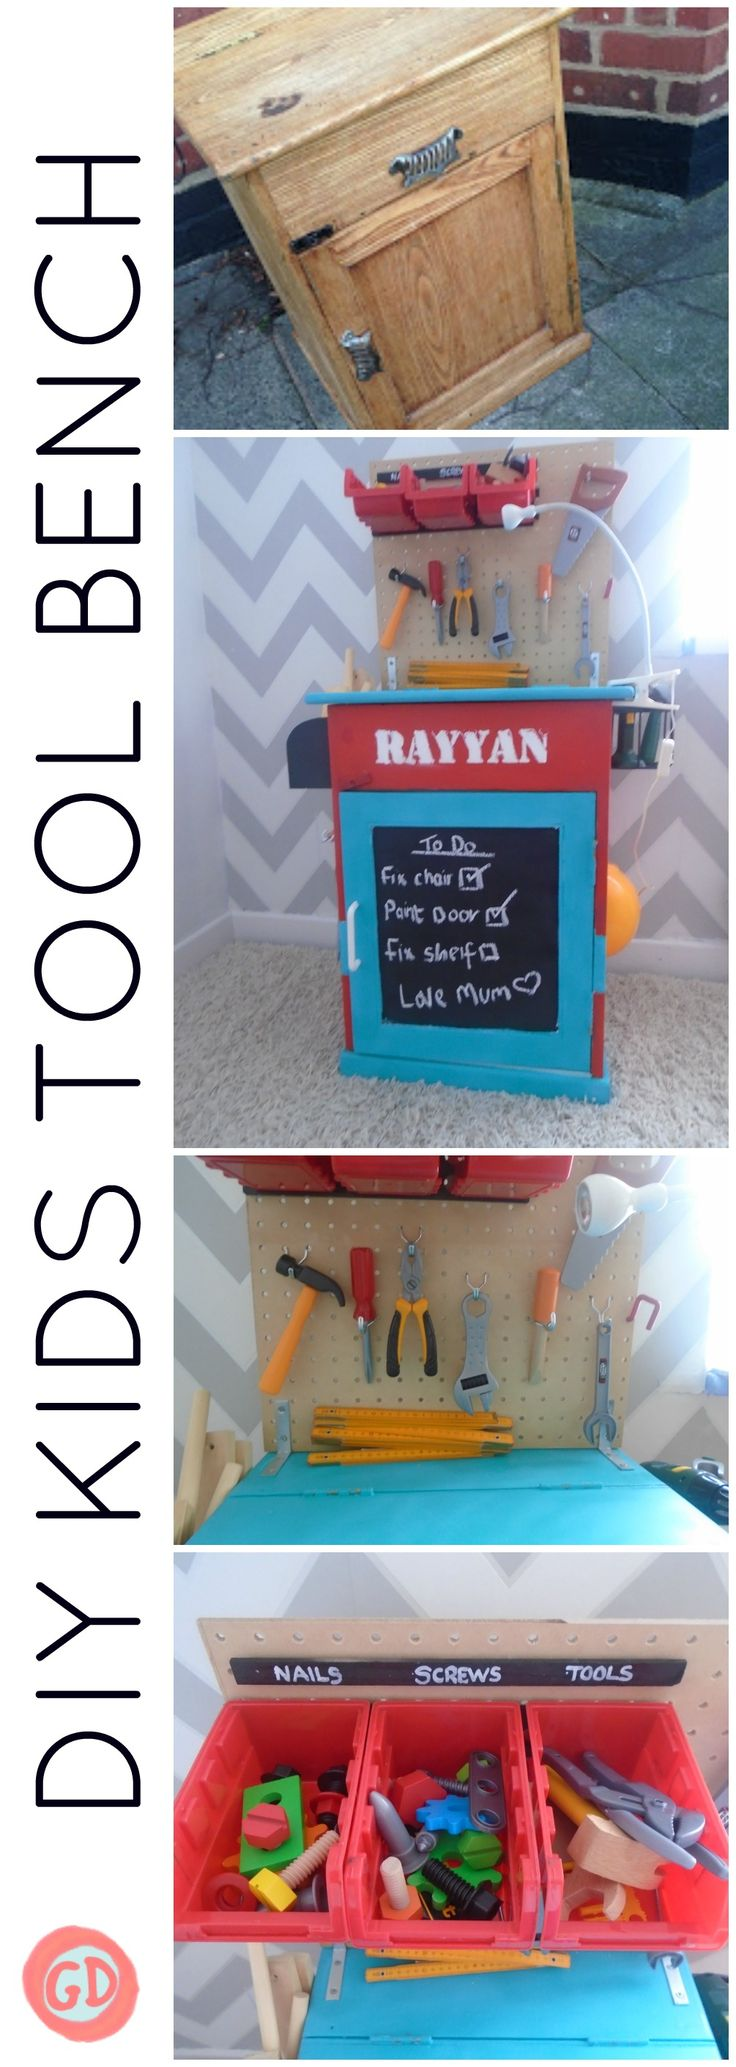 See how I created this easy to do kids tool bench out of an old wooden cabinet